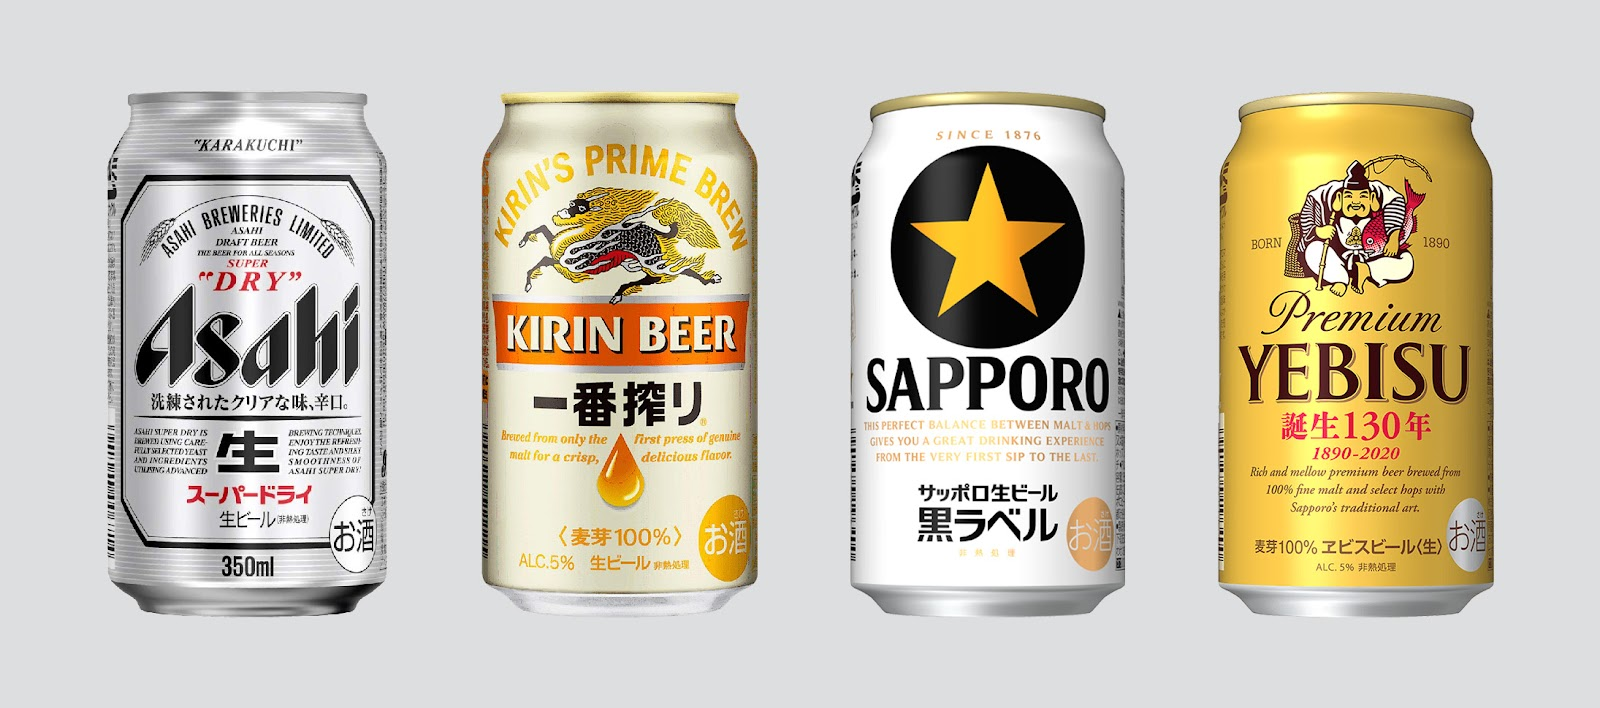 Japanese beers convenience stores alcohol